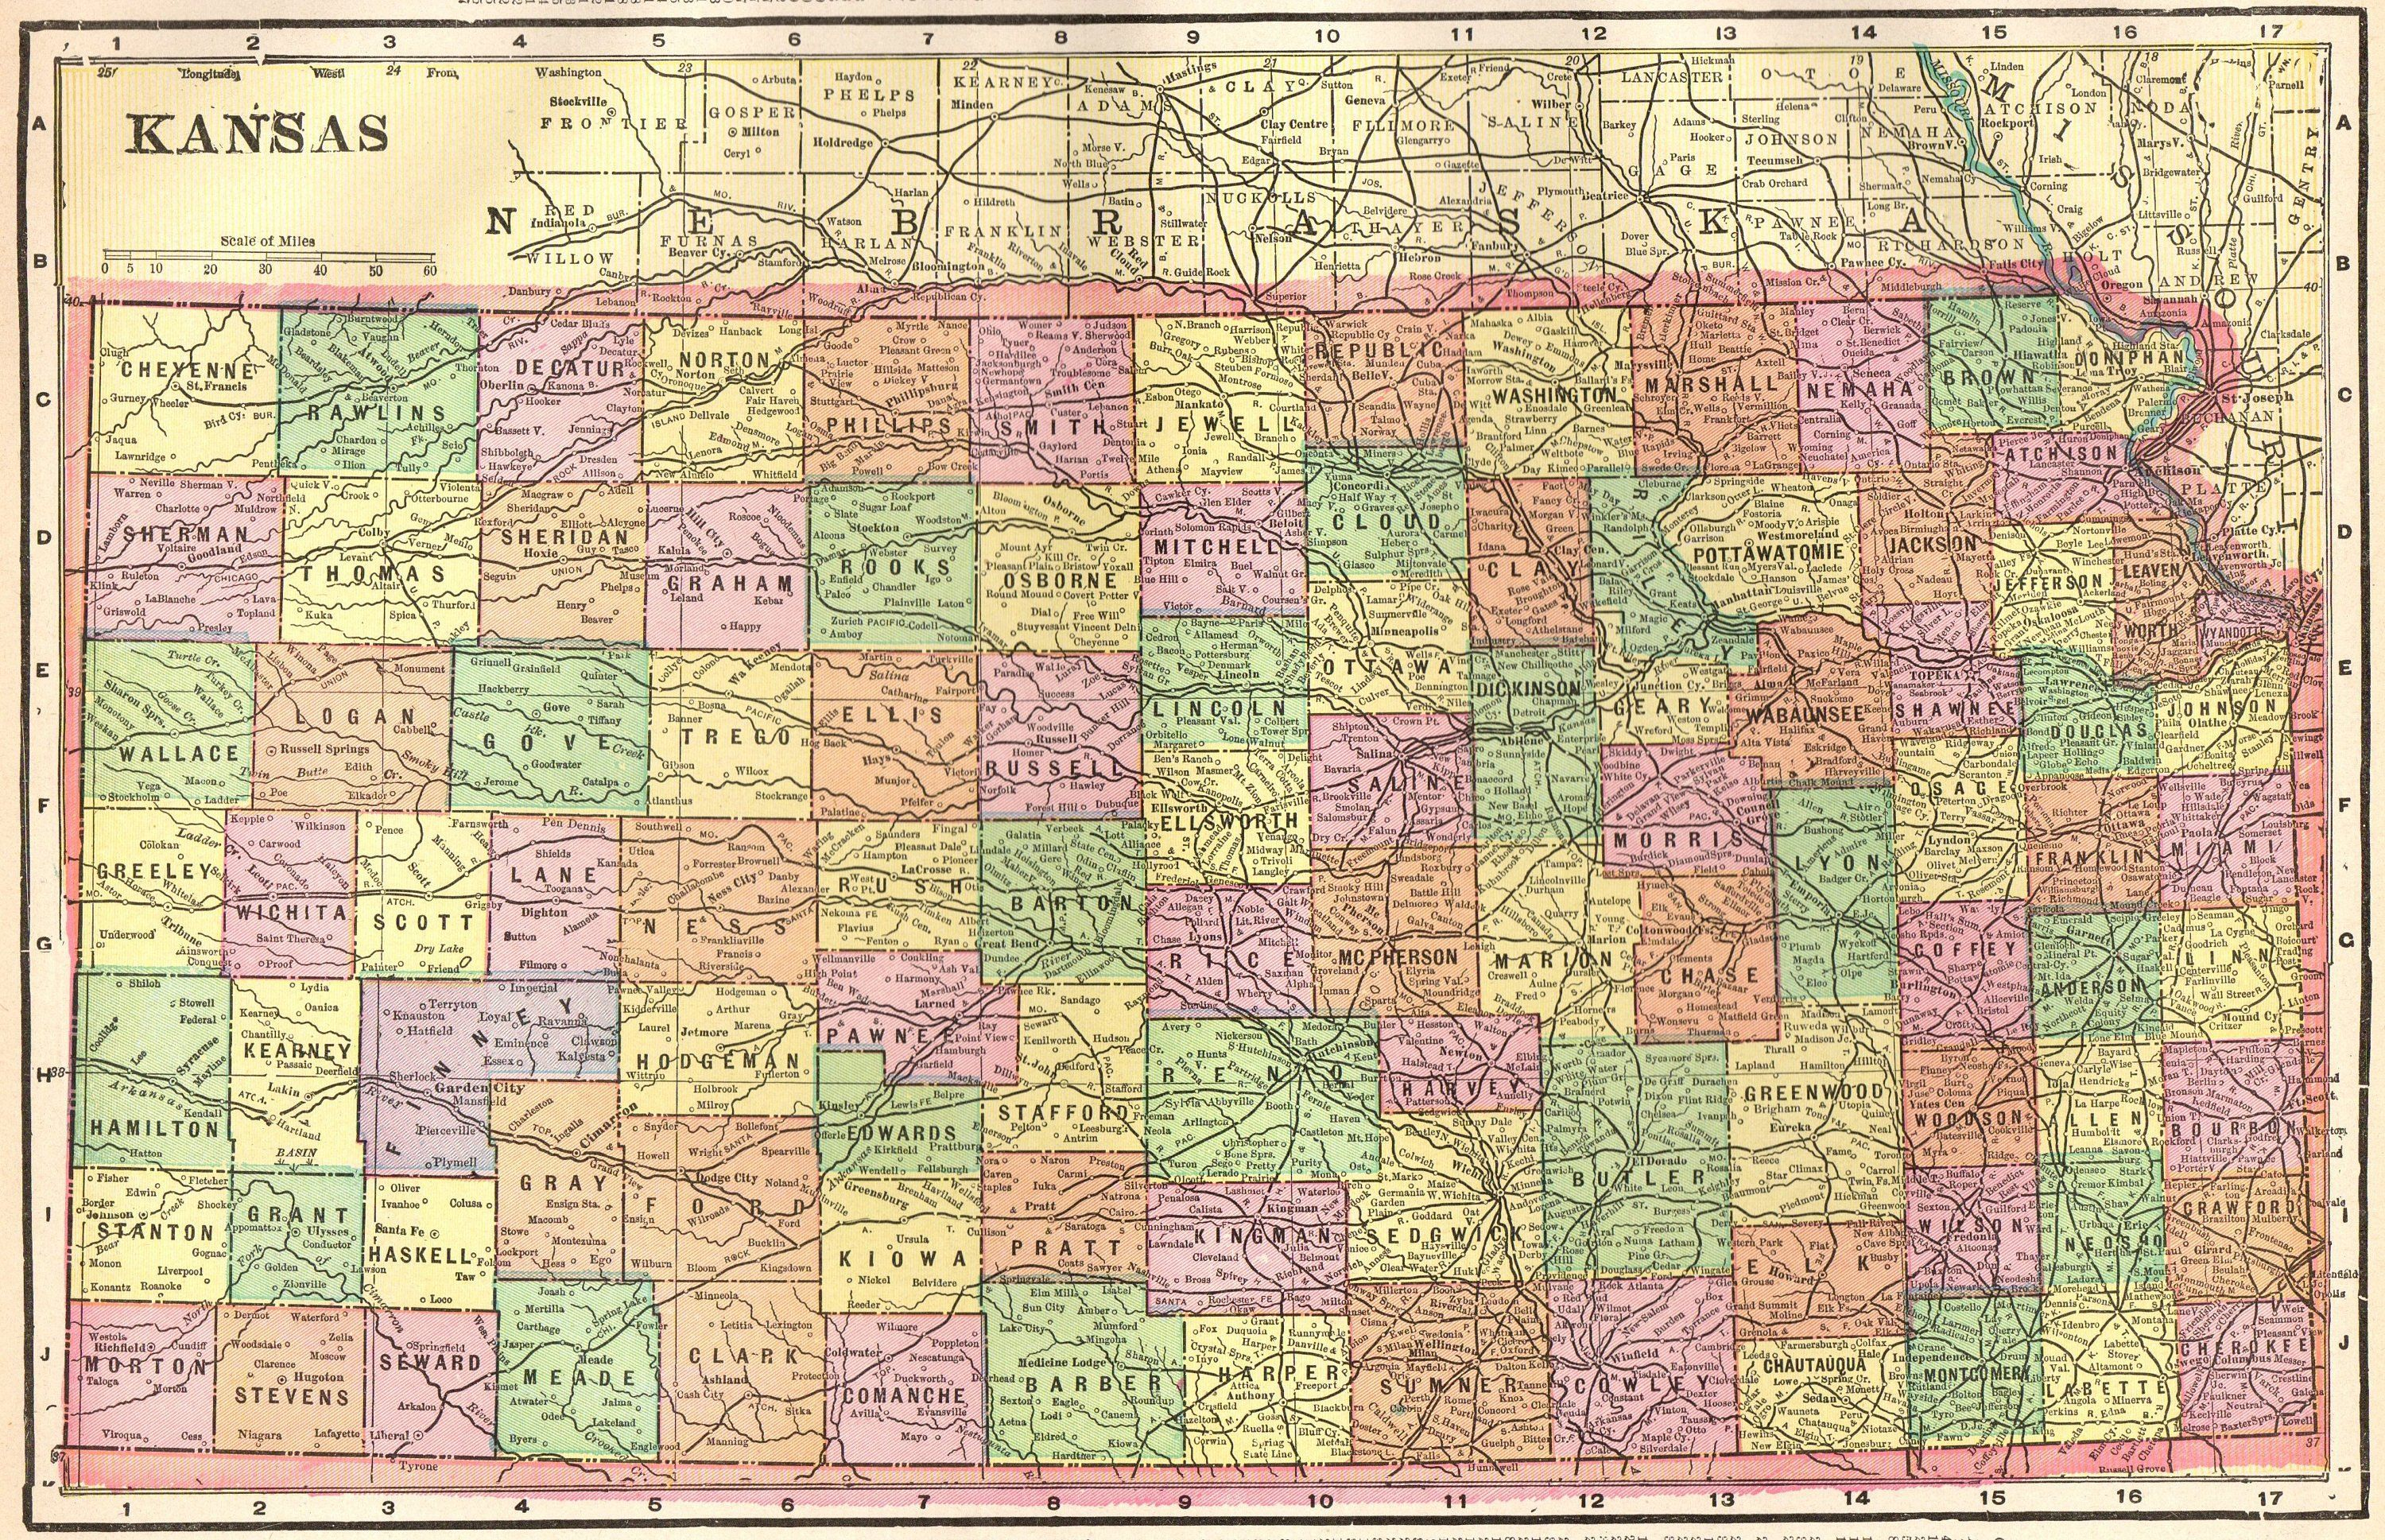 1899 Antique KANSAS Map of Kansas State Map Gallery Wall Art ... on missouri map, kansas small town map, printable kansas map, kansas interstate map, kansas elevation map, the state map, usa map, herington kansas map, colorado map, kansas lakes map, arkansas map, kansas counties map, kansas road map, kansas map with all cities, united states map, tennessee state map, kansas us map, oklahoma map, nebraska map, colby kansas map,